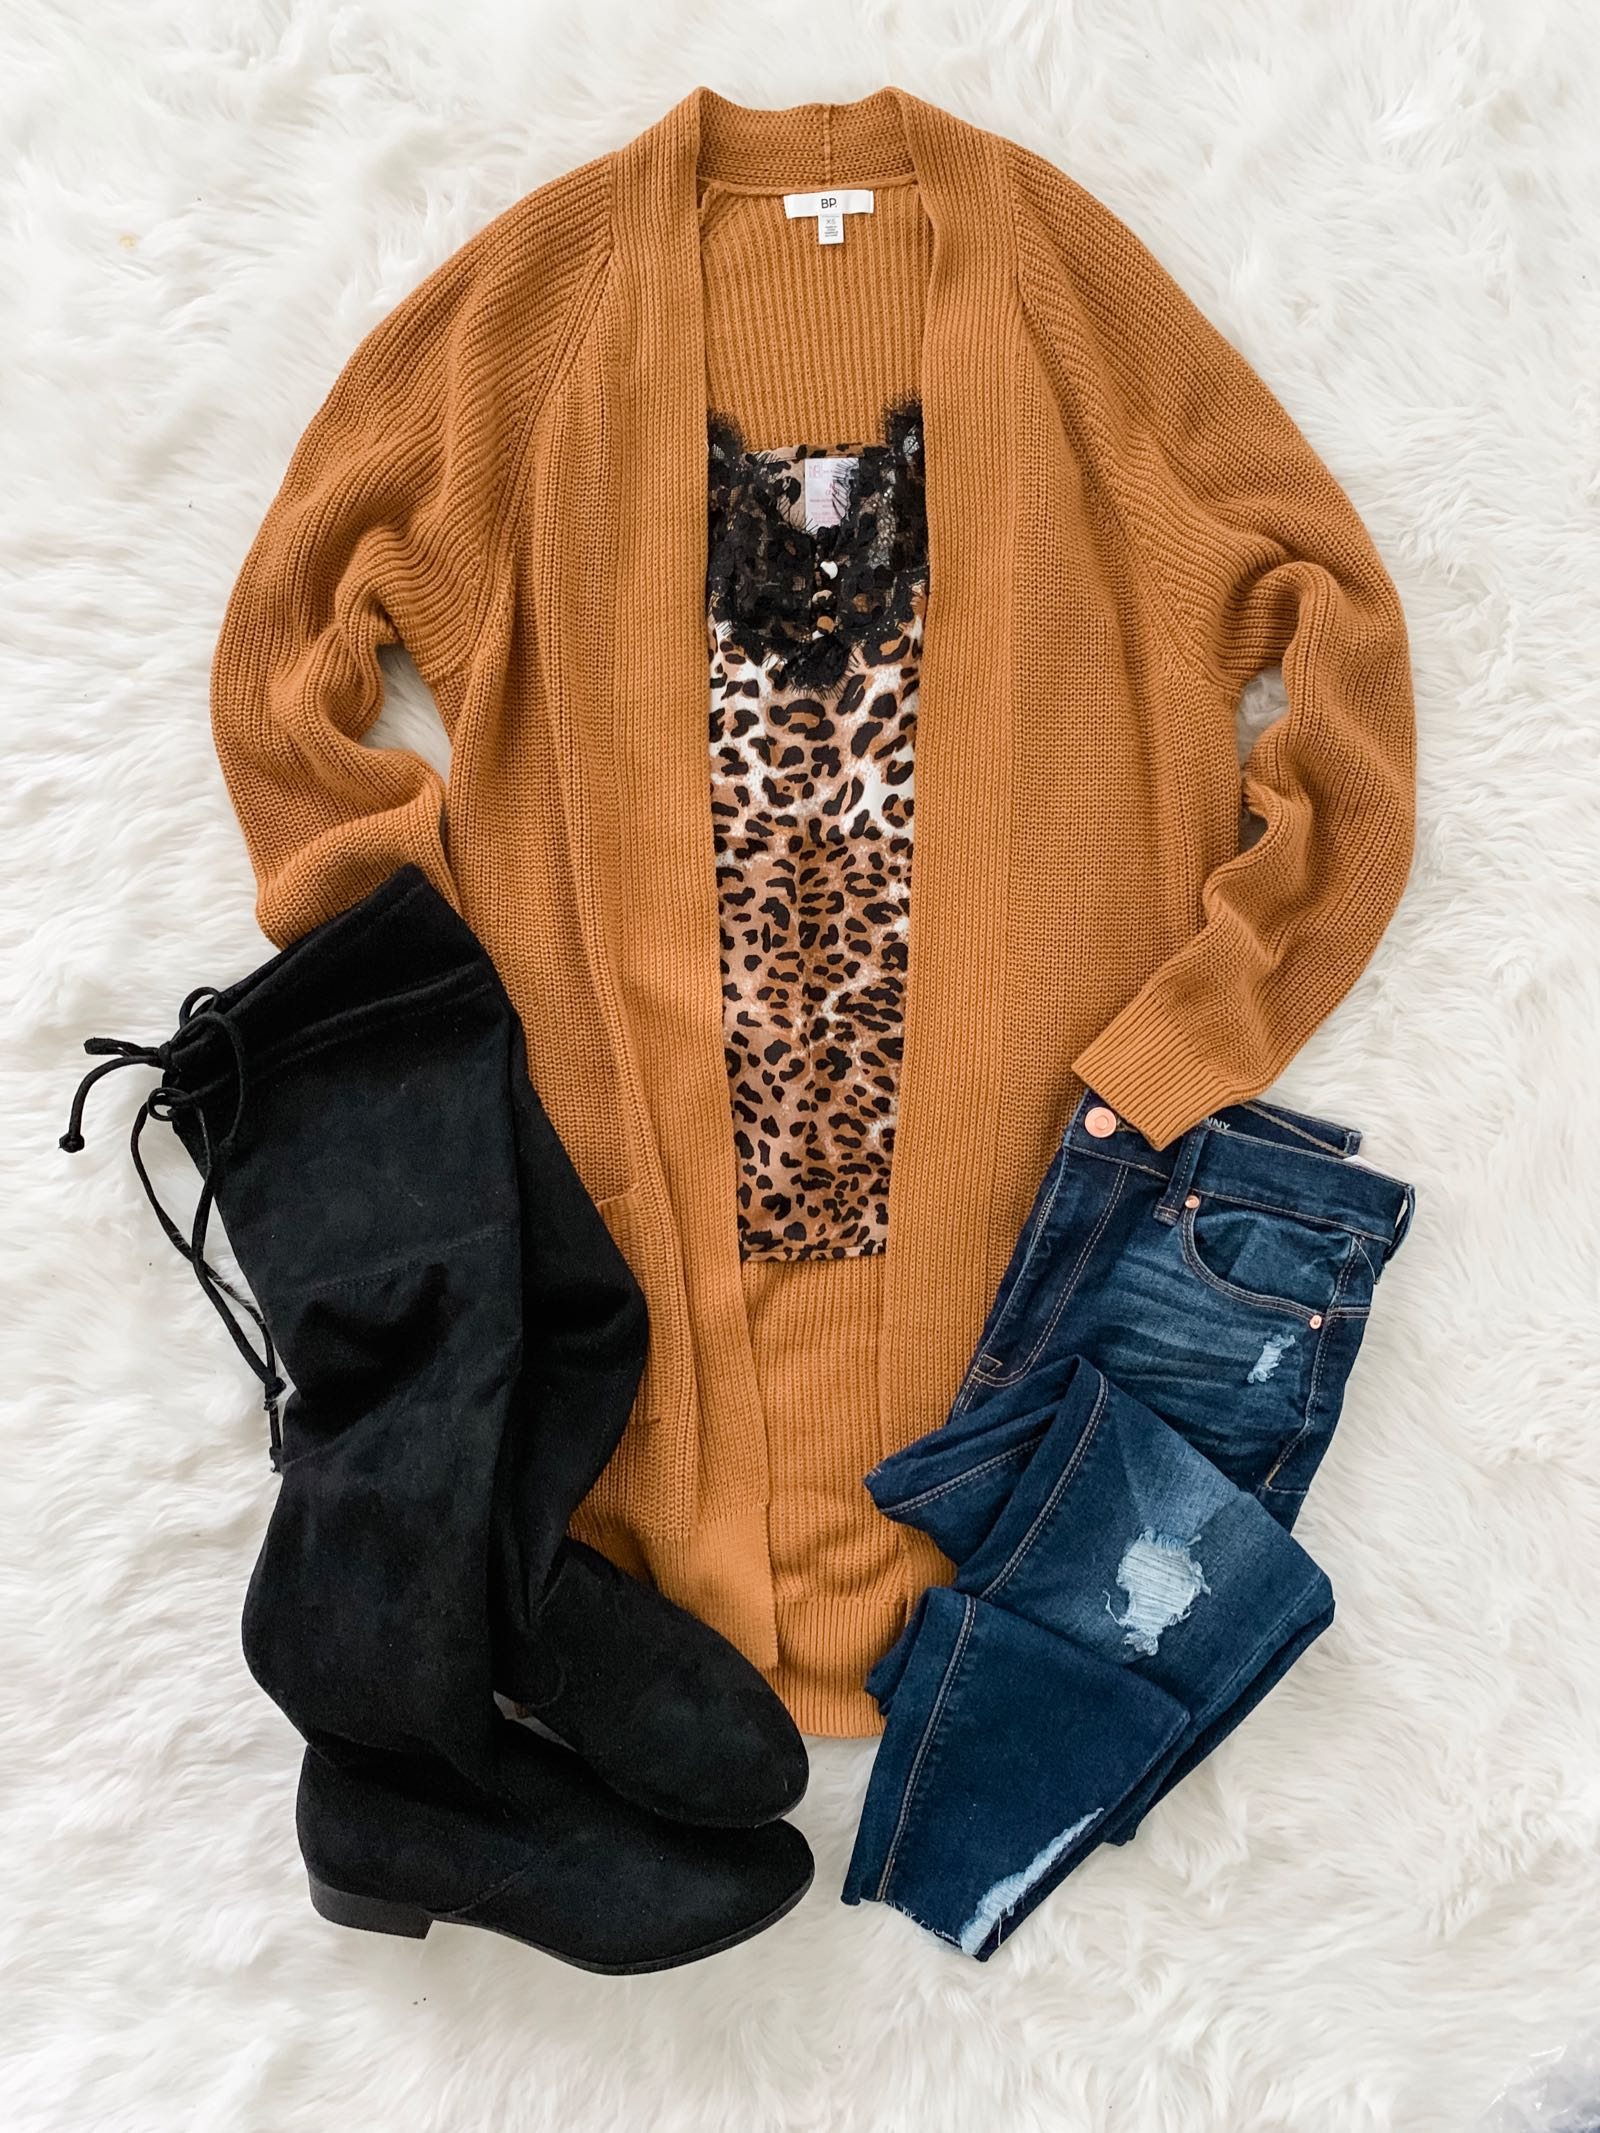 Fall outfit idea on a budget // The Budget Babe Fashion Blog